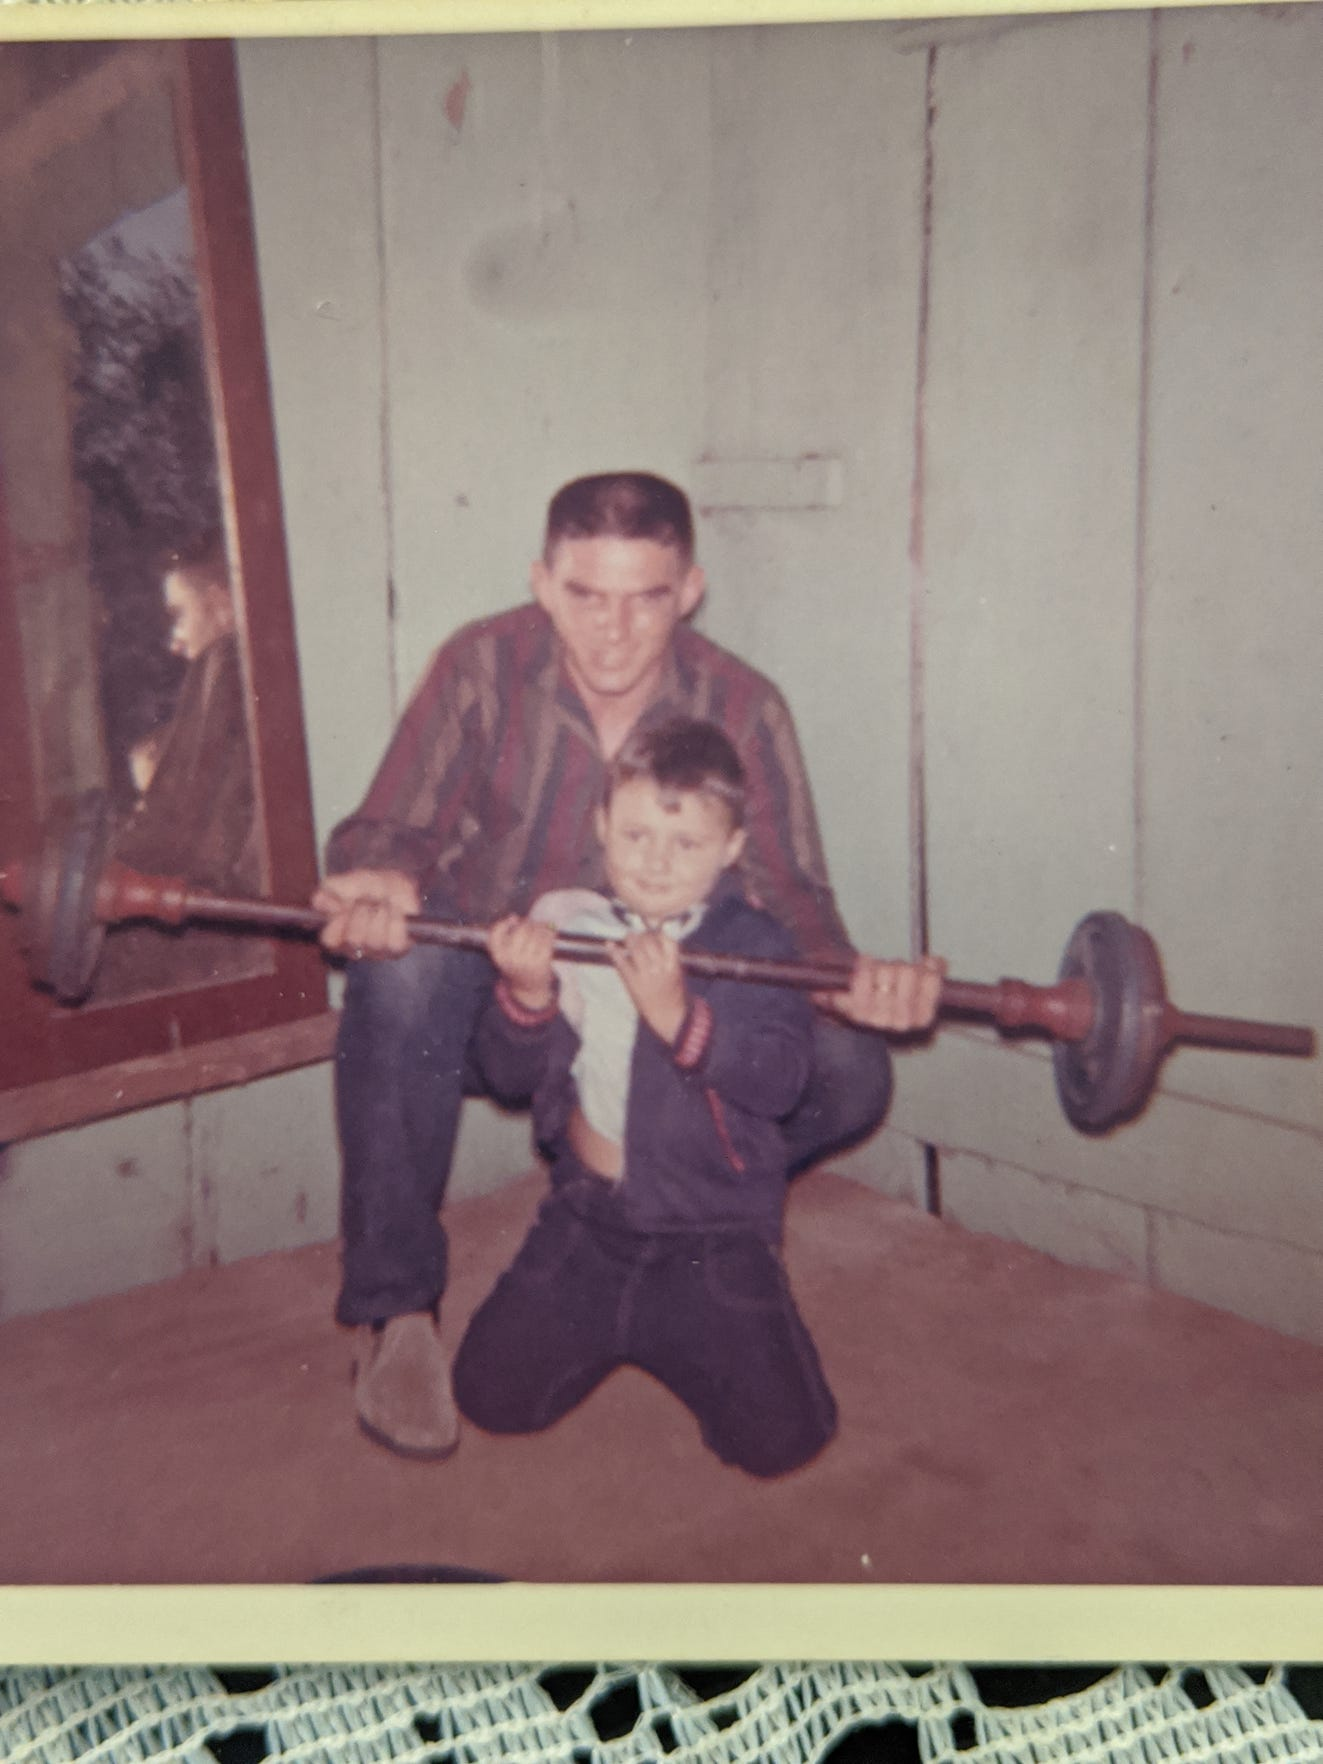 A young Ed Orgeron lifting weights with his father Ed Orgeron Sr.